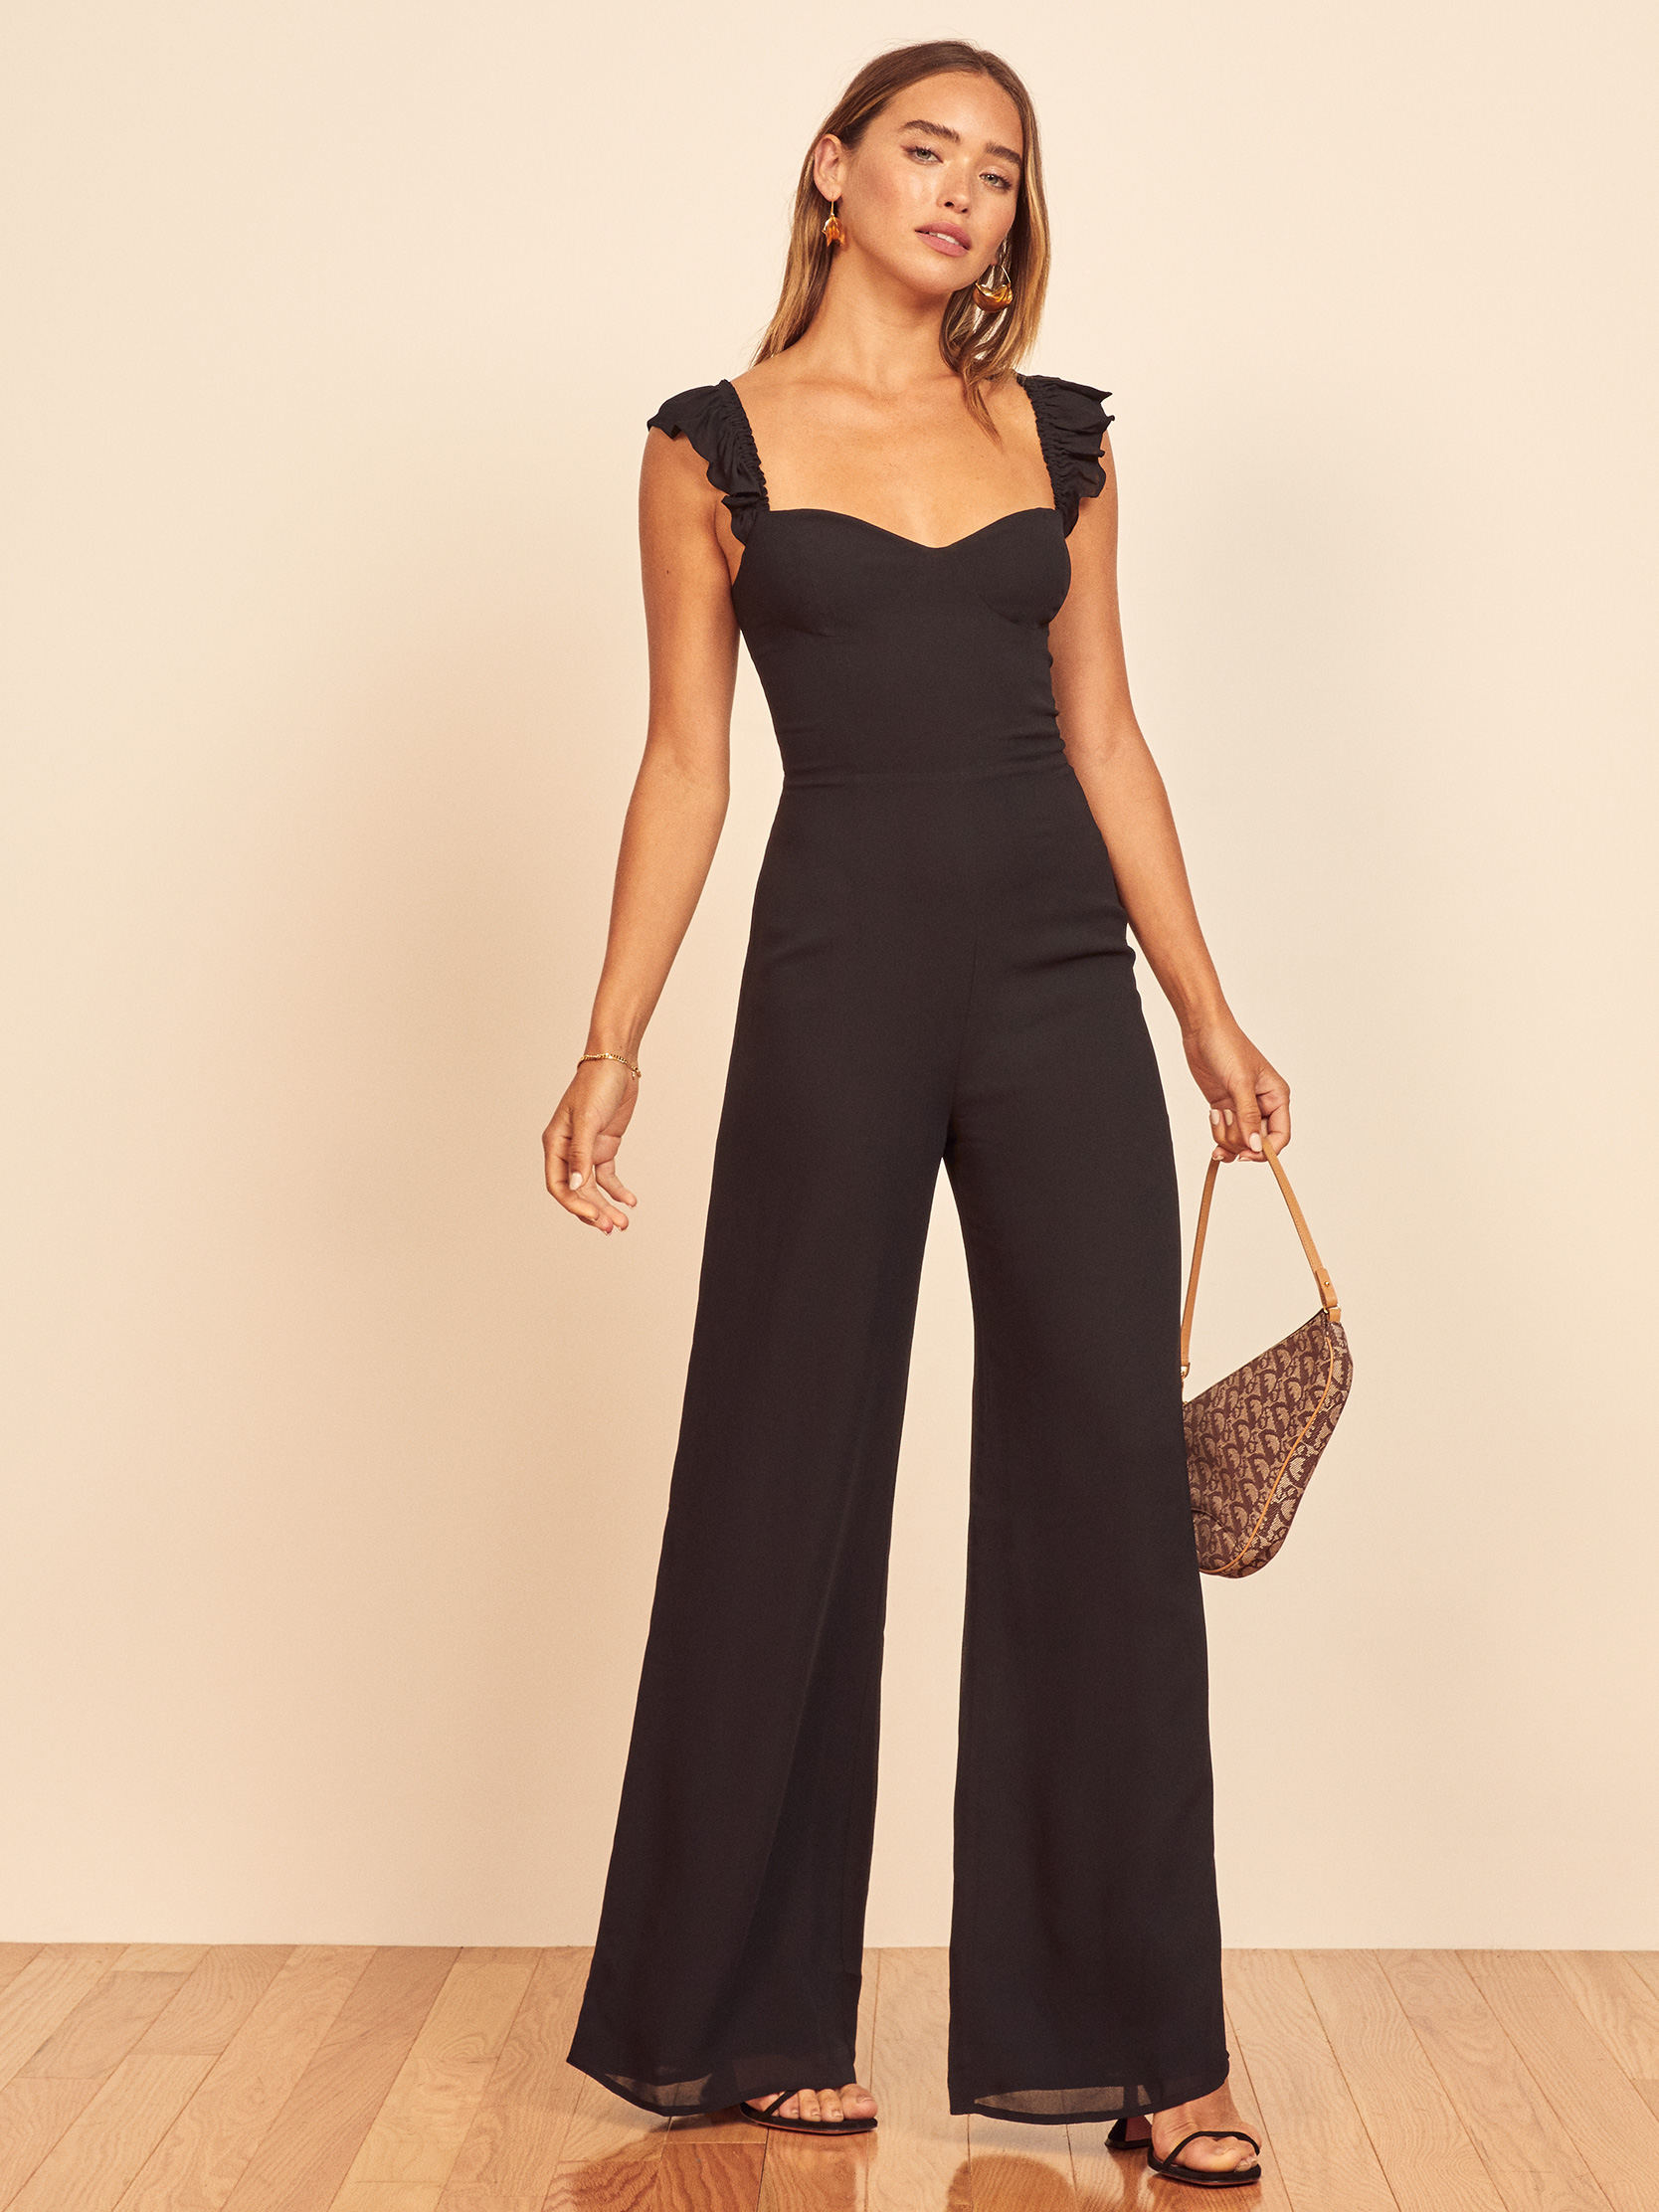 If You've Been Wearing the Same Nap Dress All Summer, You'll Be Living In These Jumpsuits Come Fall